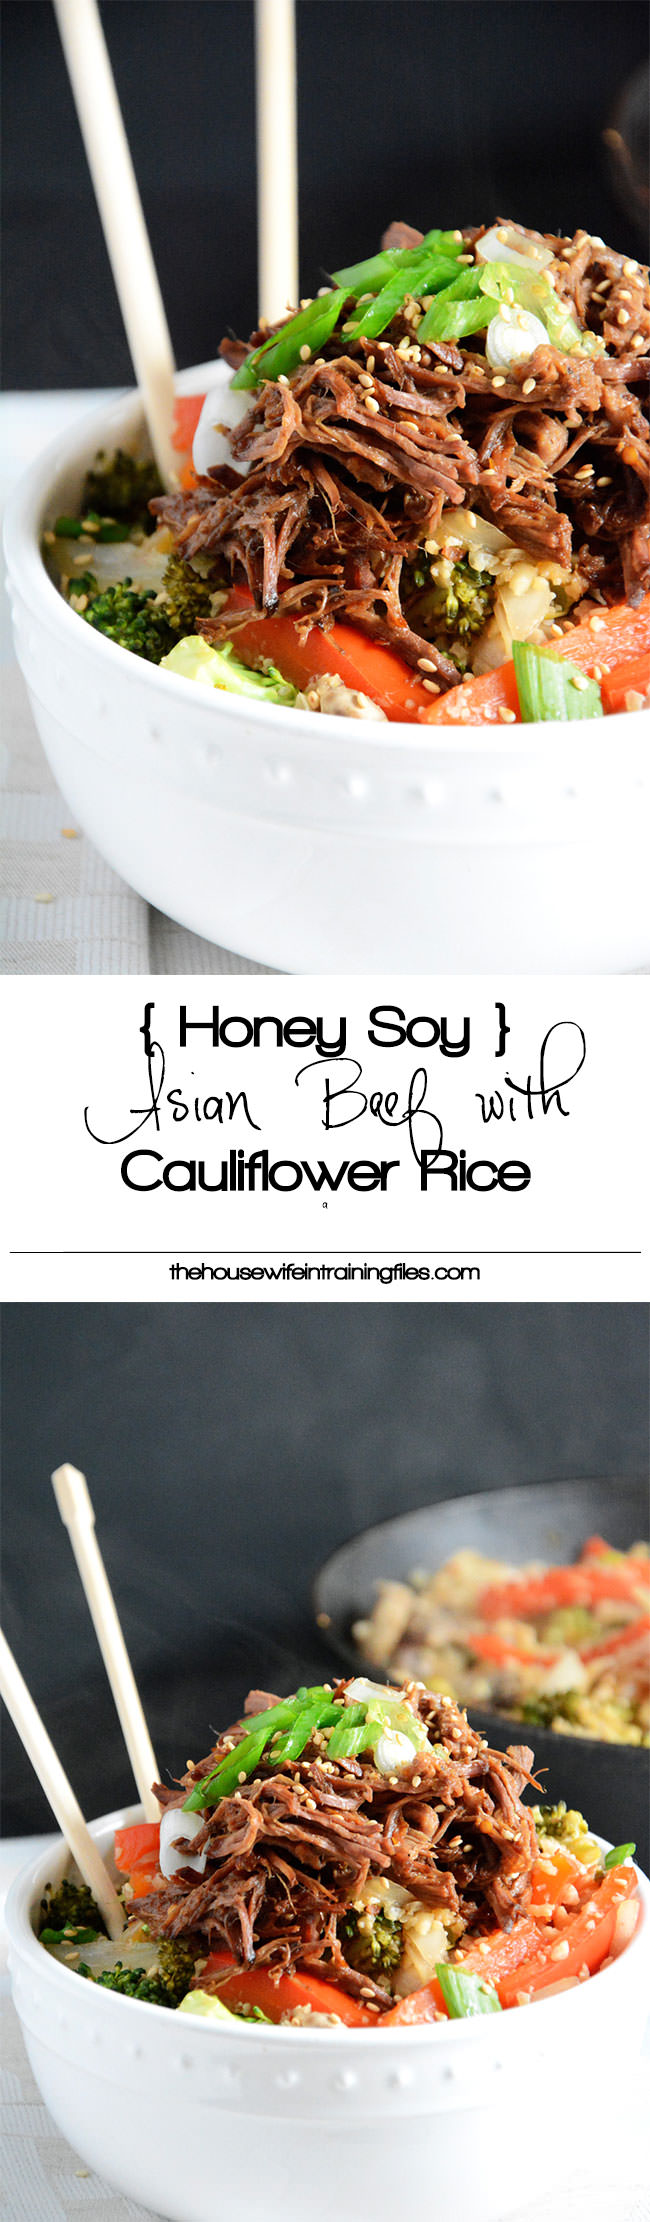 Honey-Soy Asian beef simmered in the slow cooker until tender and served over low-carb cauliflower fried rice!